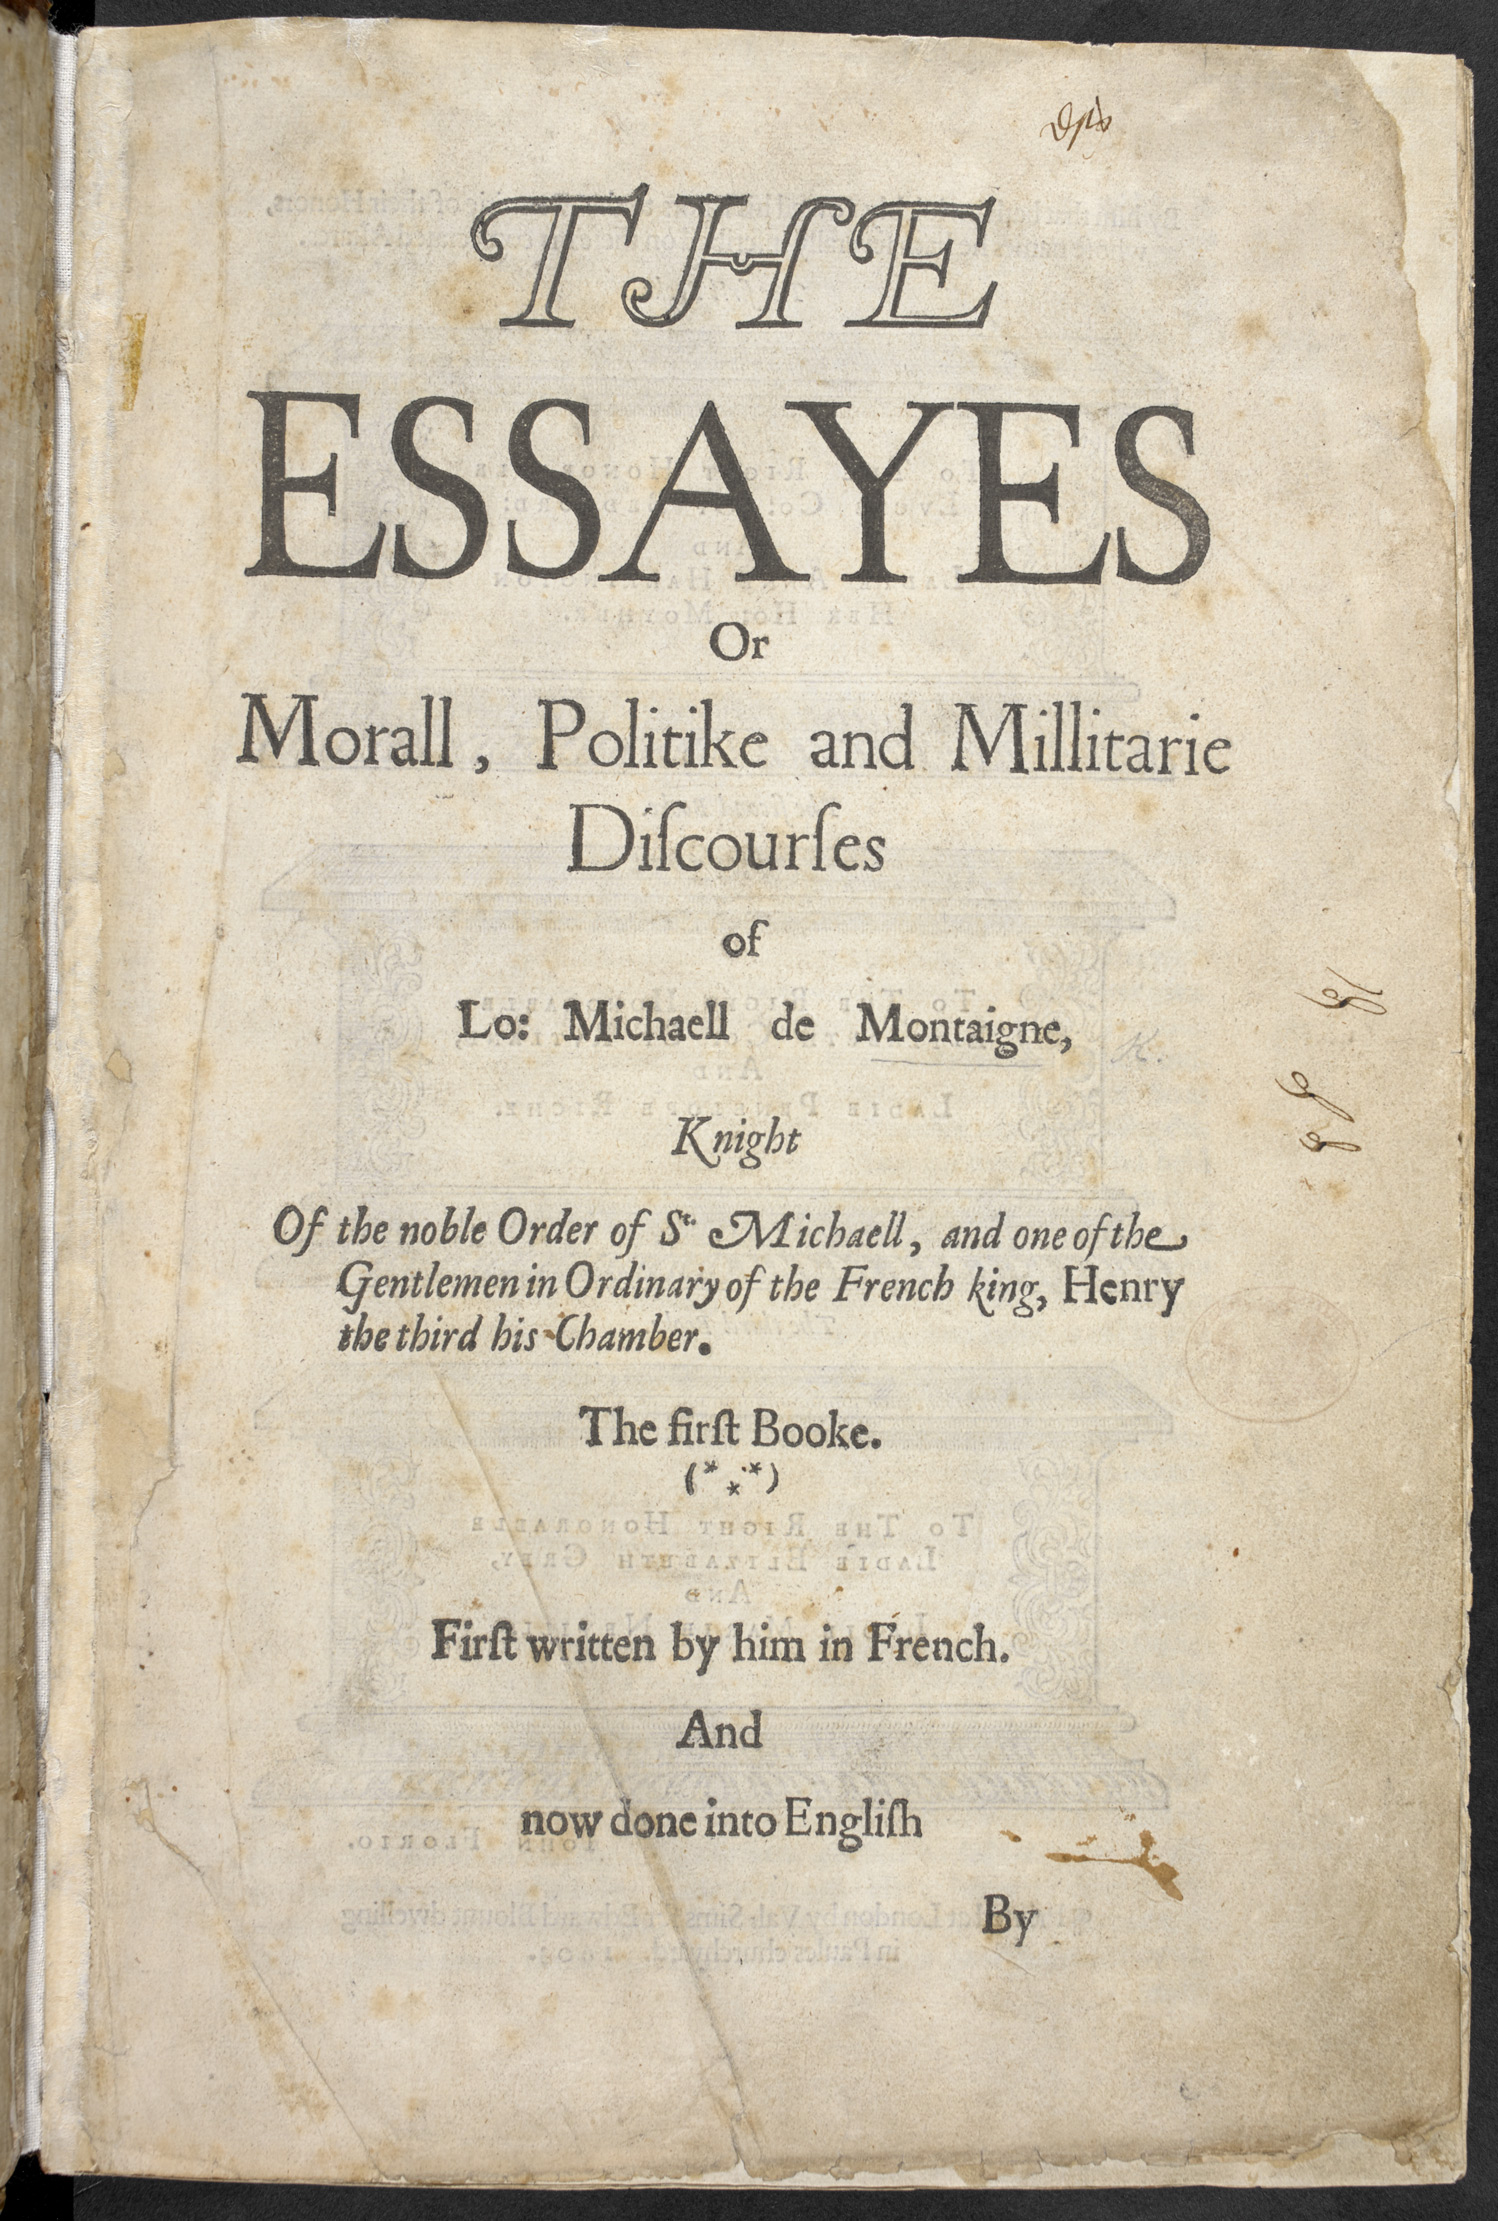 montaignes essays translated by florio   the british library